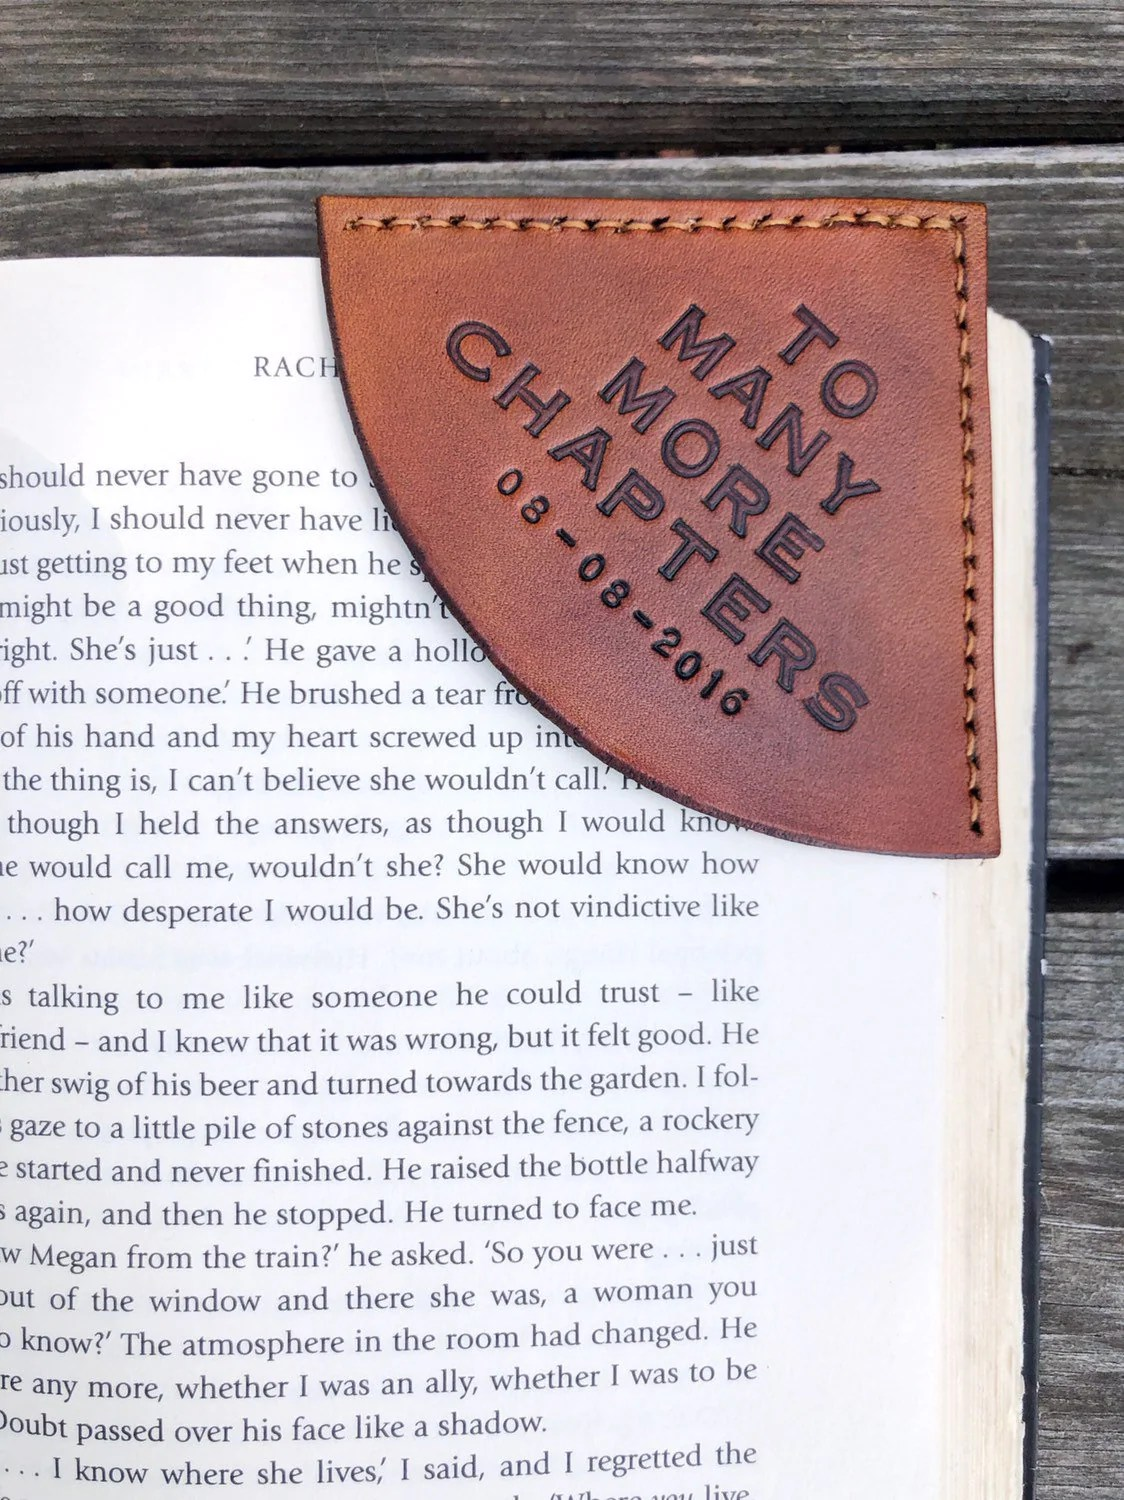 Personalized Tan Leather Corner Bookmark – Custom Message Lettering – Leather Anniversary – For Him or Her – Mother's Day – Leather Gift                                                                    AniseLeatherInc         From shop AniseLeatherInc                               5 out of 5 stars                                                                                                                                                                                                                                                          (521)                 521 reviews                                                      CA$55.81                                                                   FREE delivery